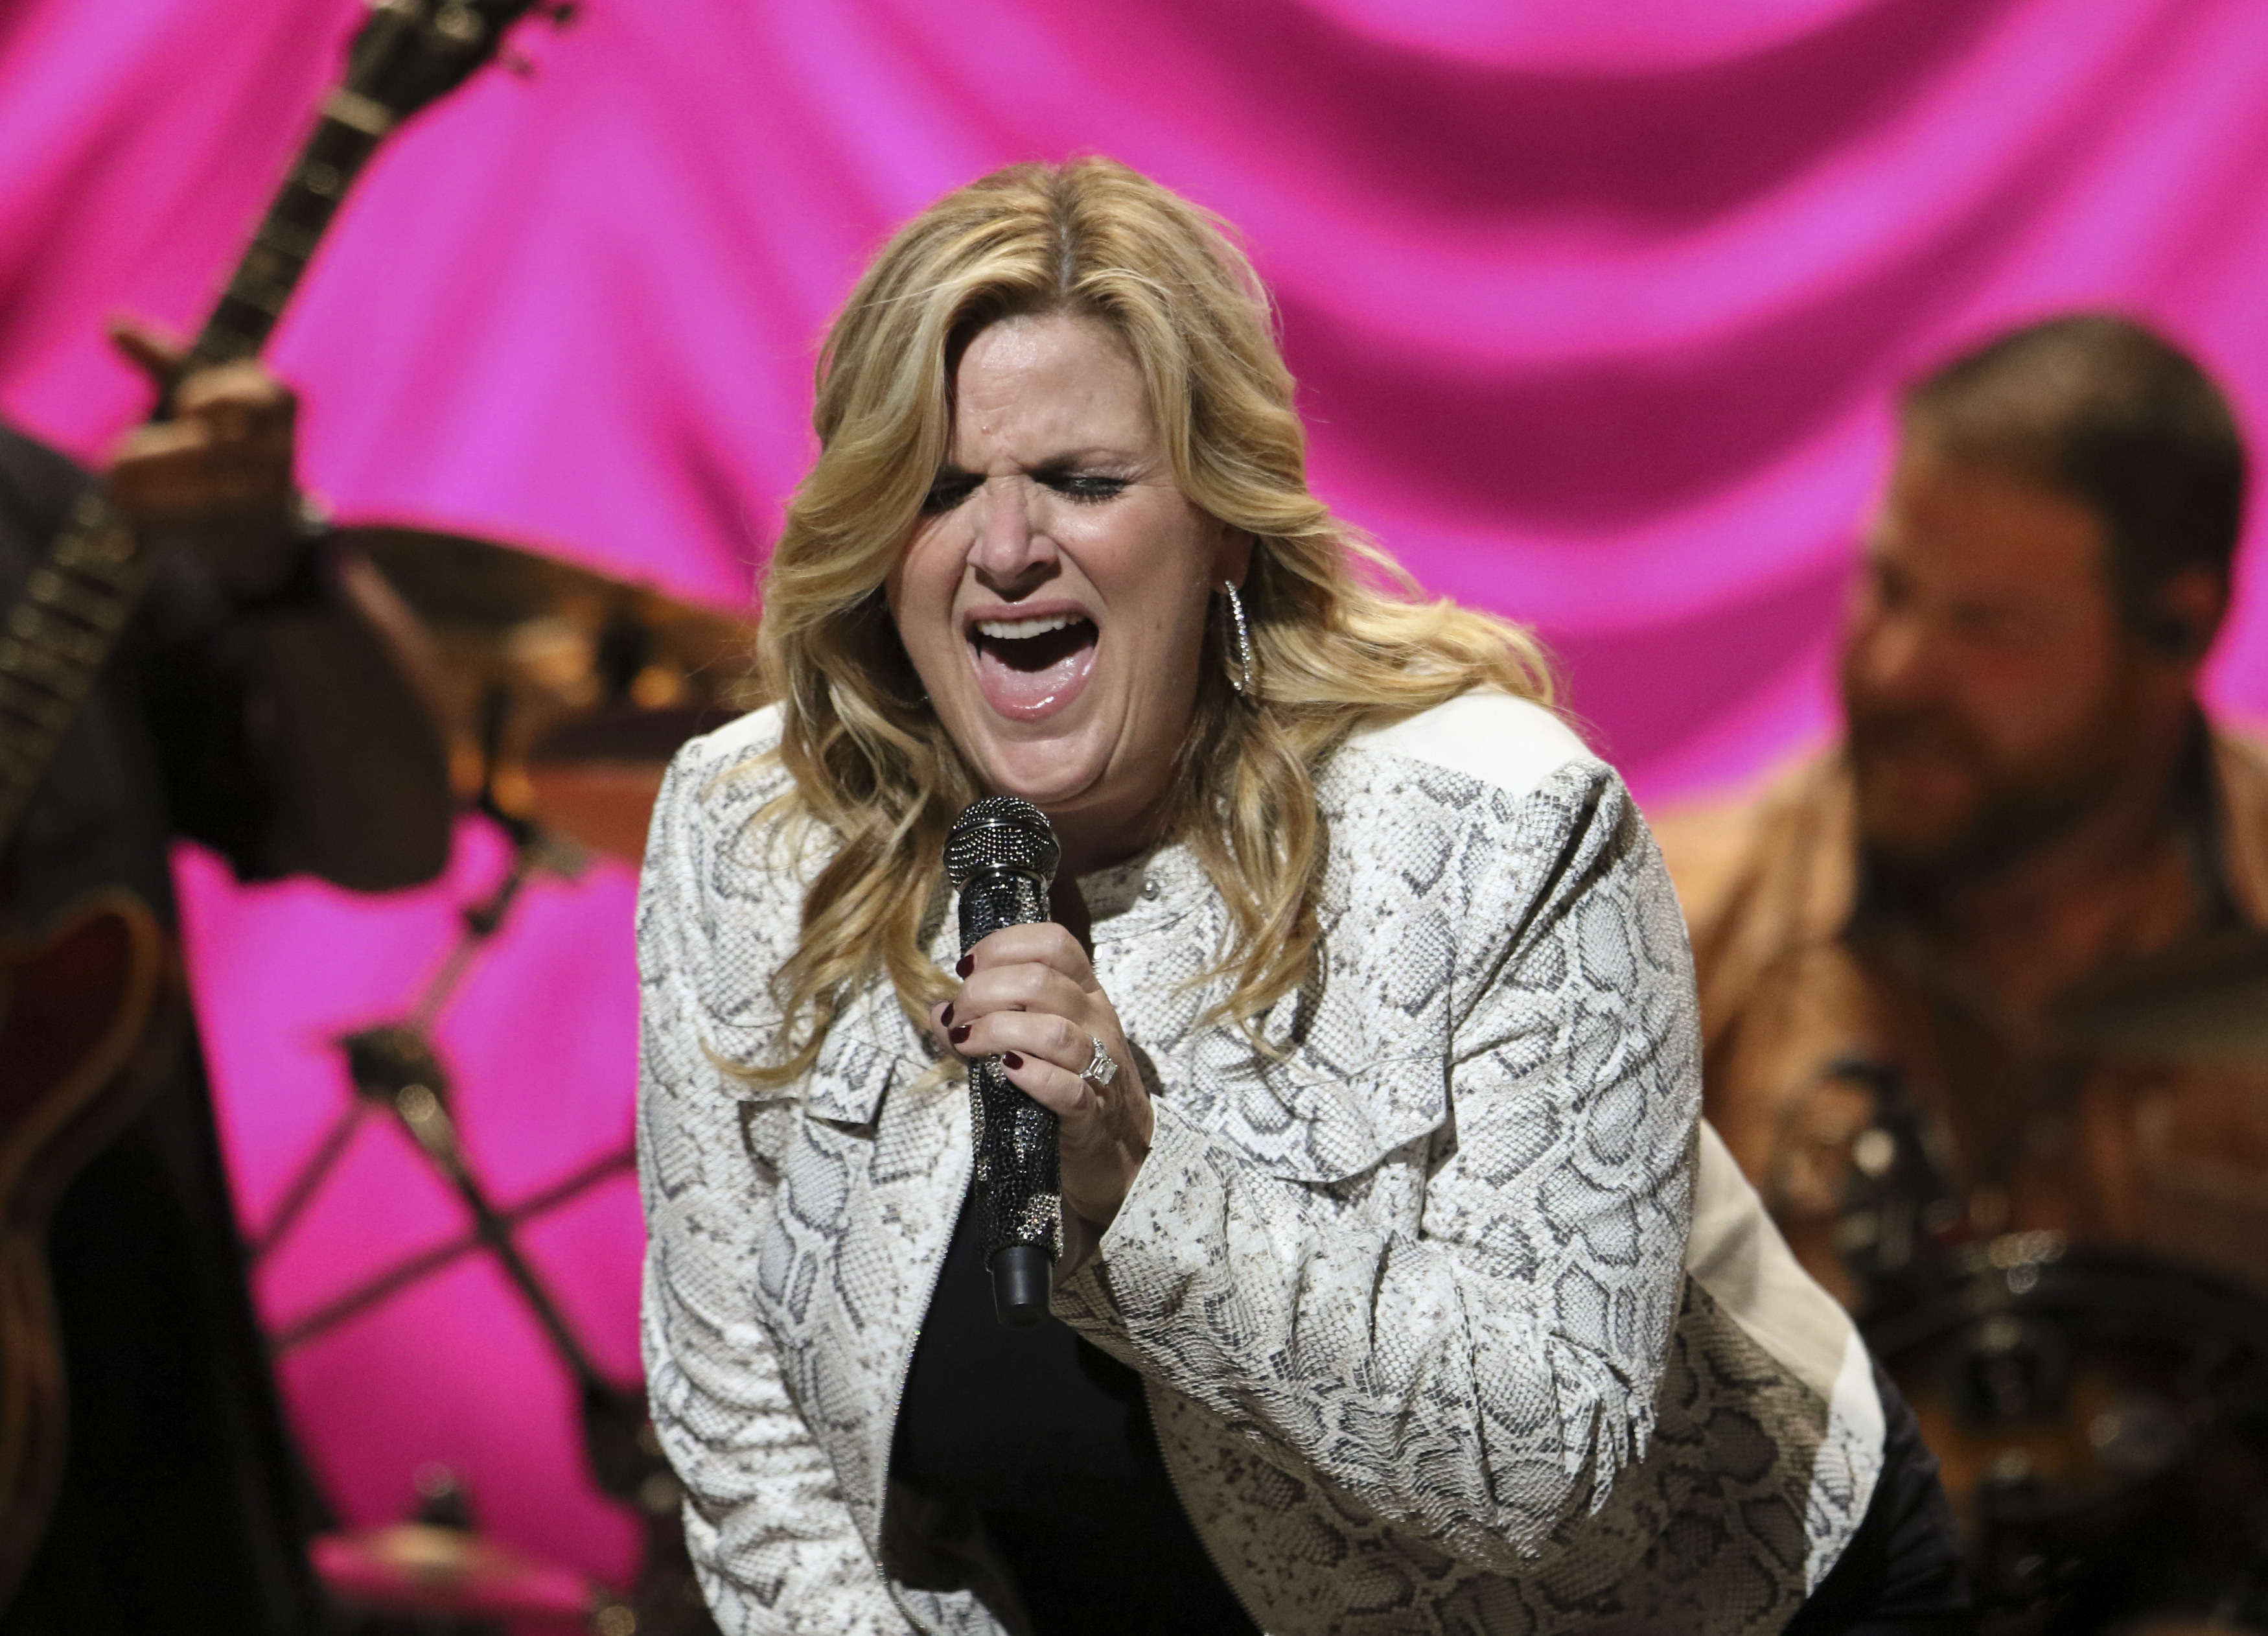 Trisha Yearwood Continues To Make Her Own Way With Every Girl